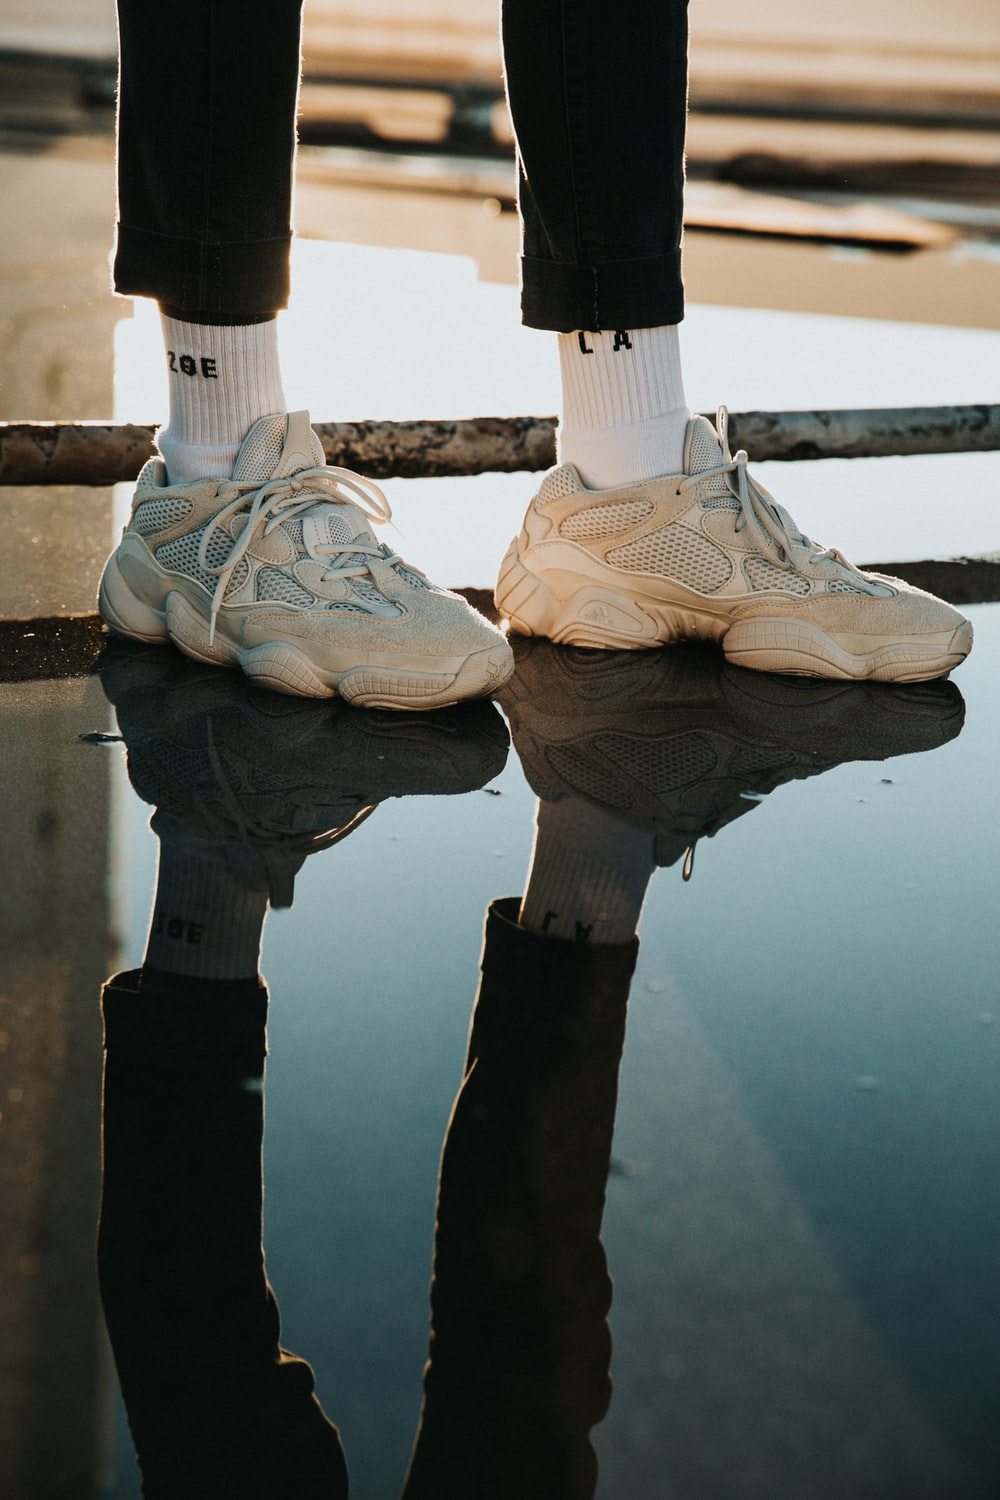 person wearing pair of white lace-up sneakers with reflection to water during daytime